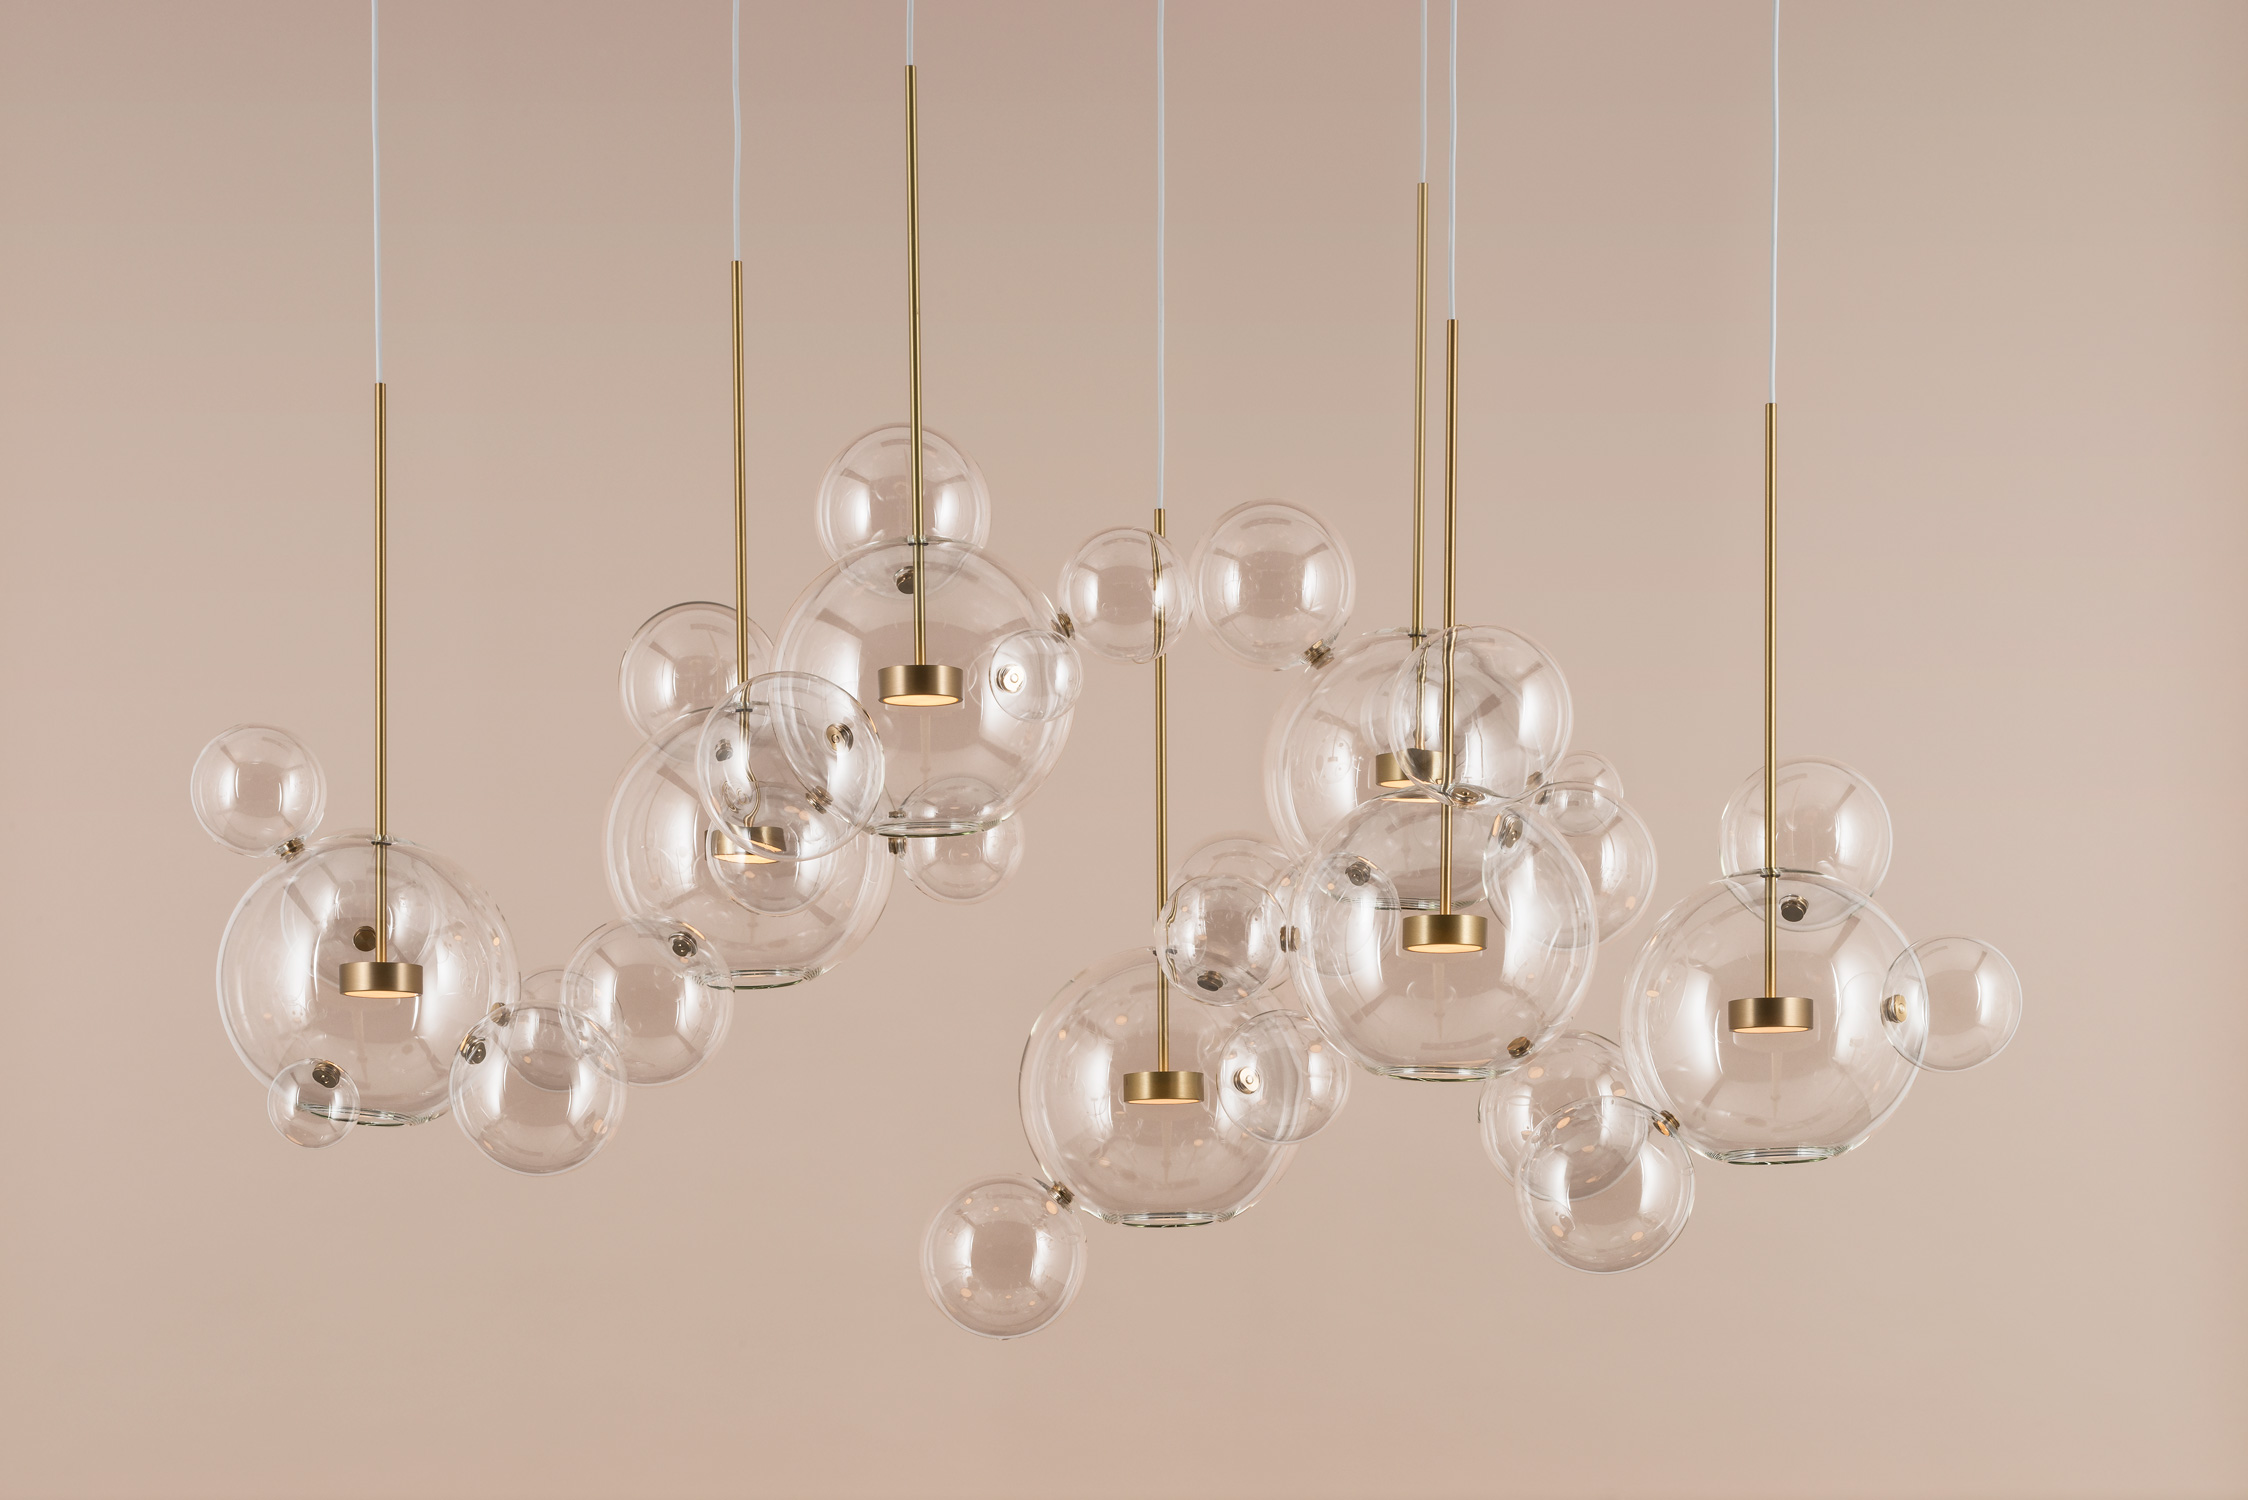 Giopato_Coombes_Bolle_Zigzag_Chandelier_34_Bubbles_Ph_FedericoVilla.jpg